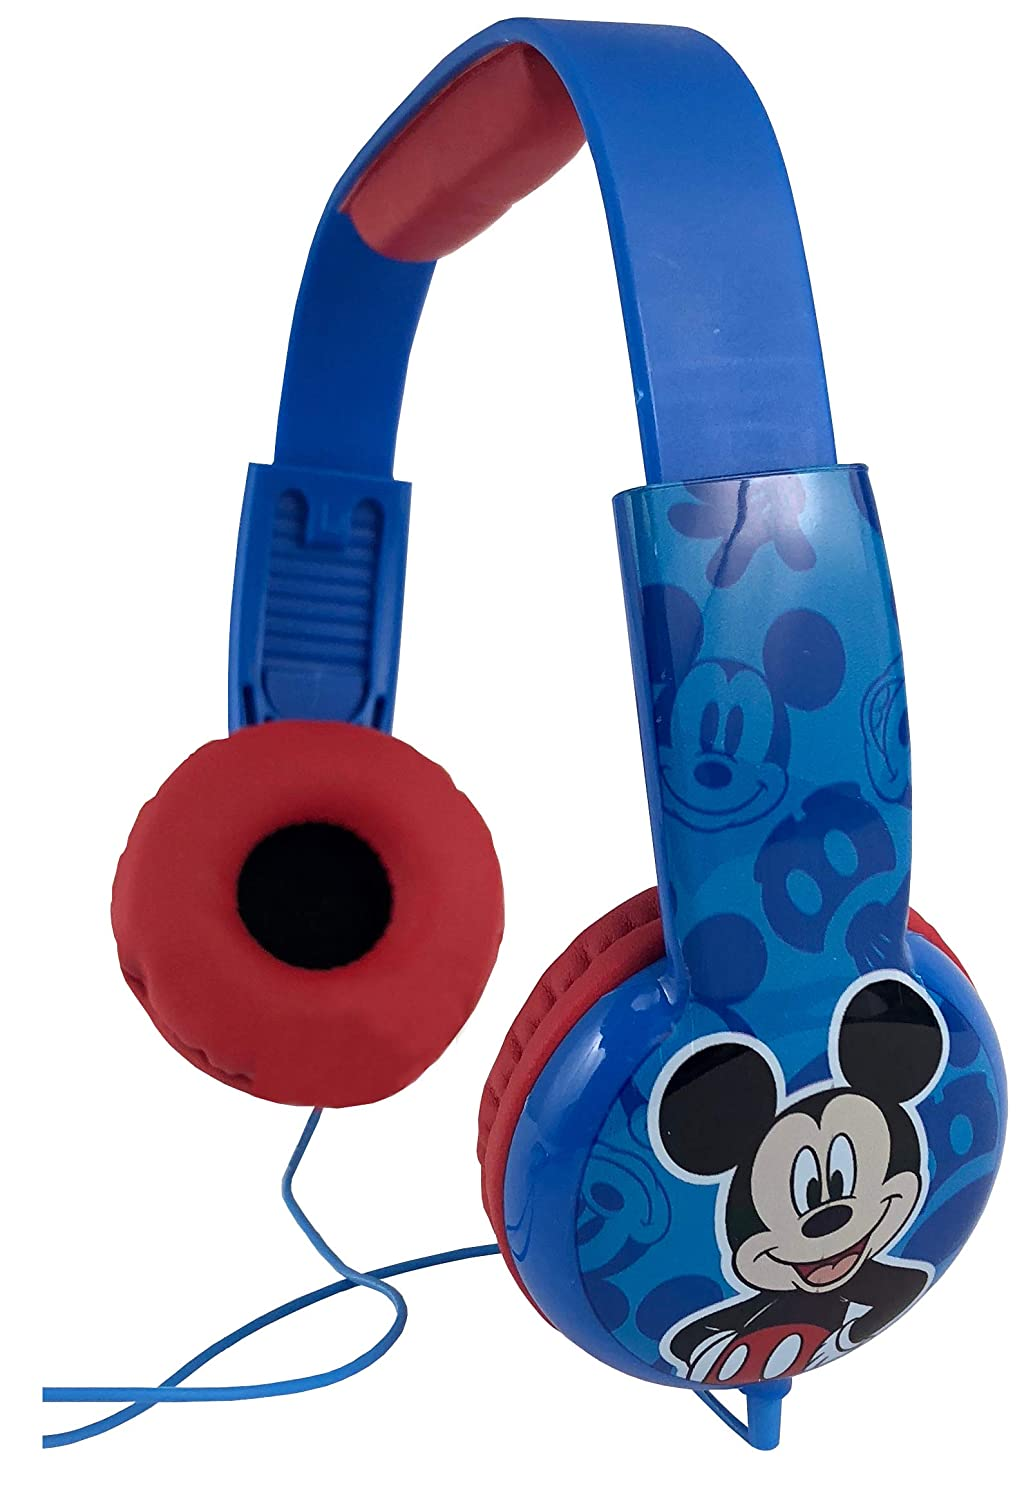 Mickey Mouse Kids Safe Headphones with Built in Volume Limiting Feature for Safe Listening - Age 3 to 12